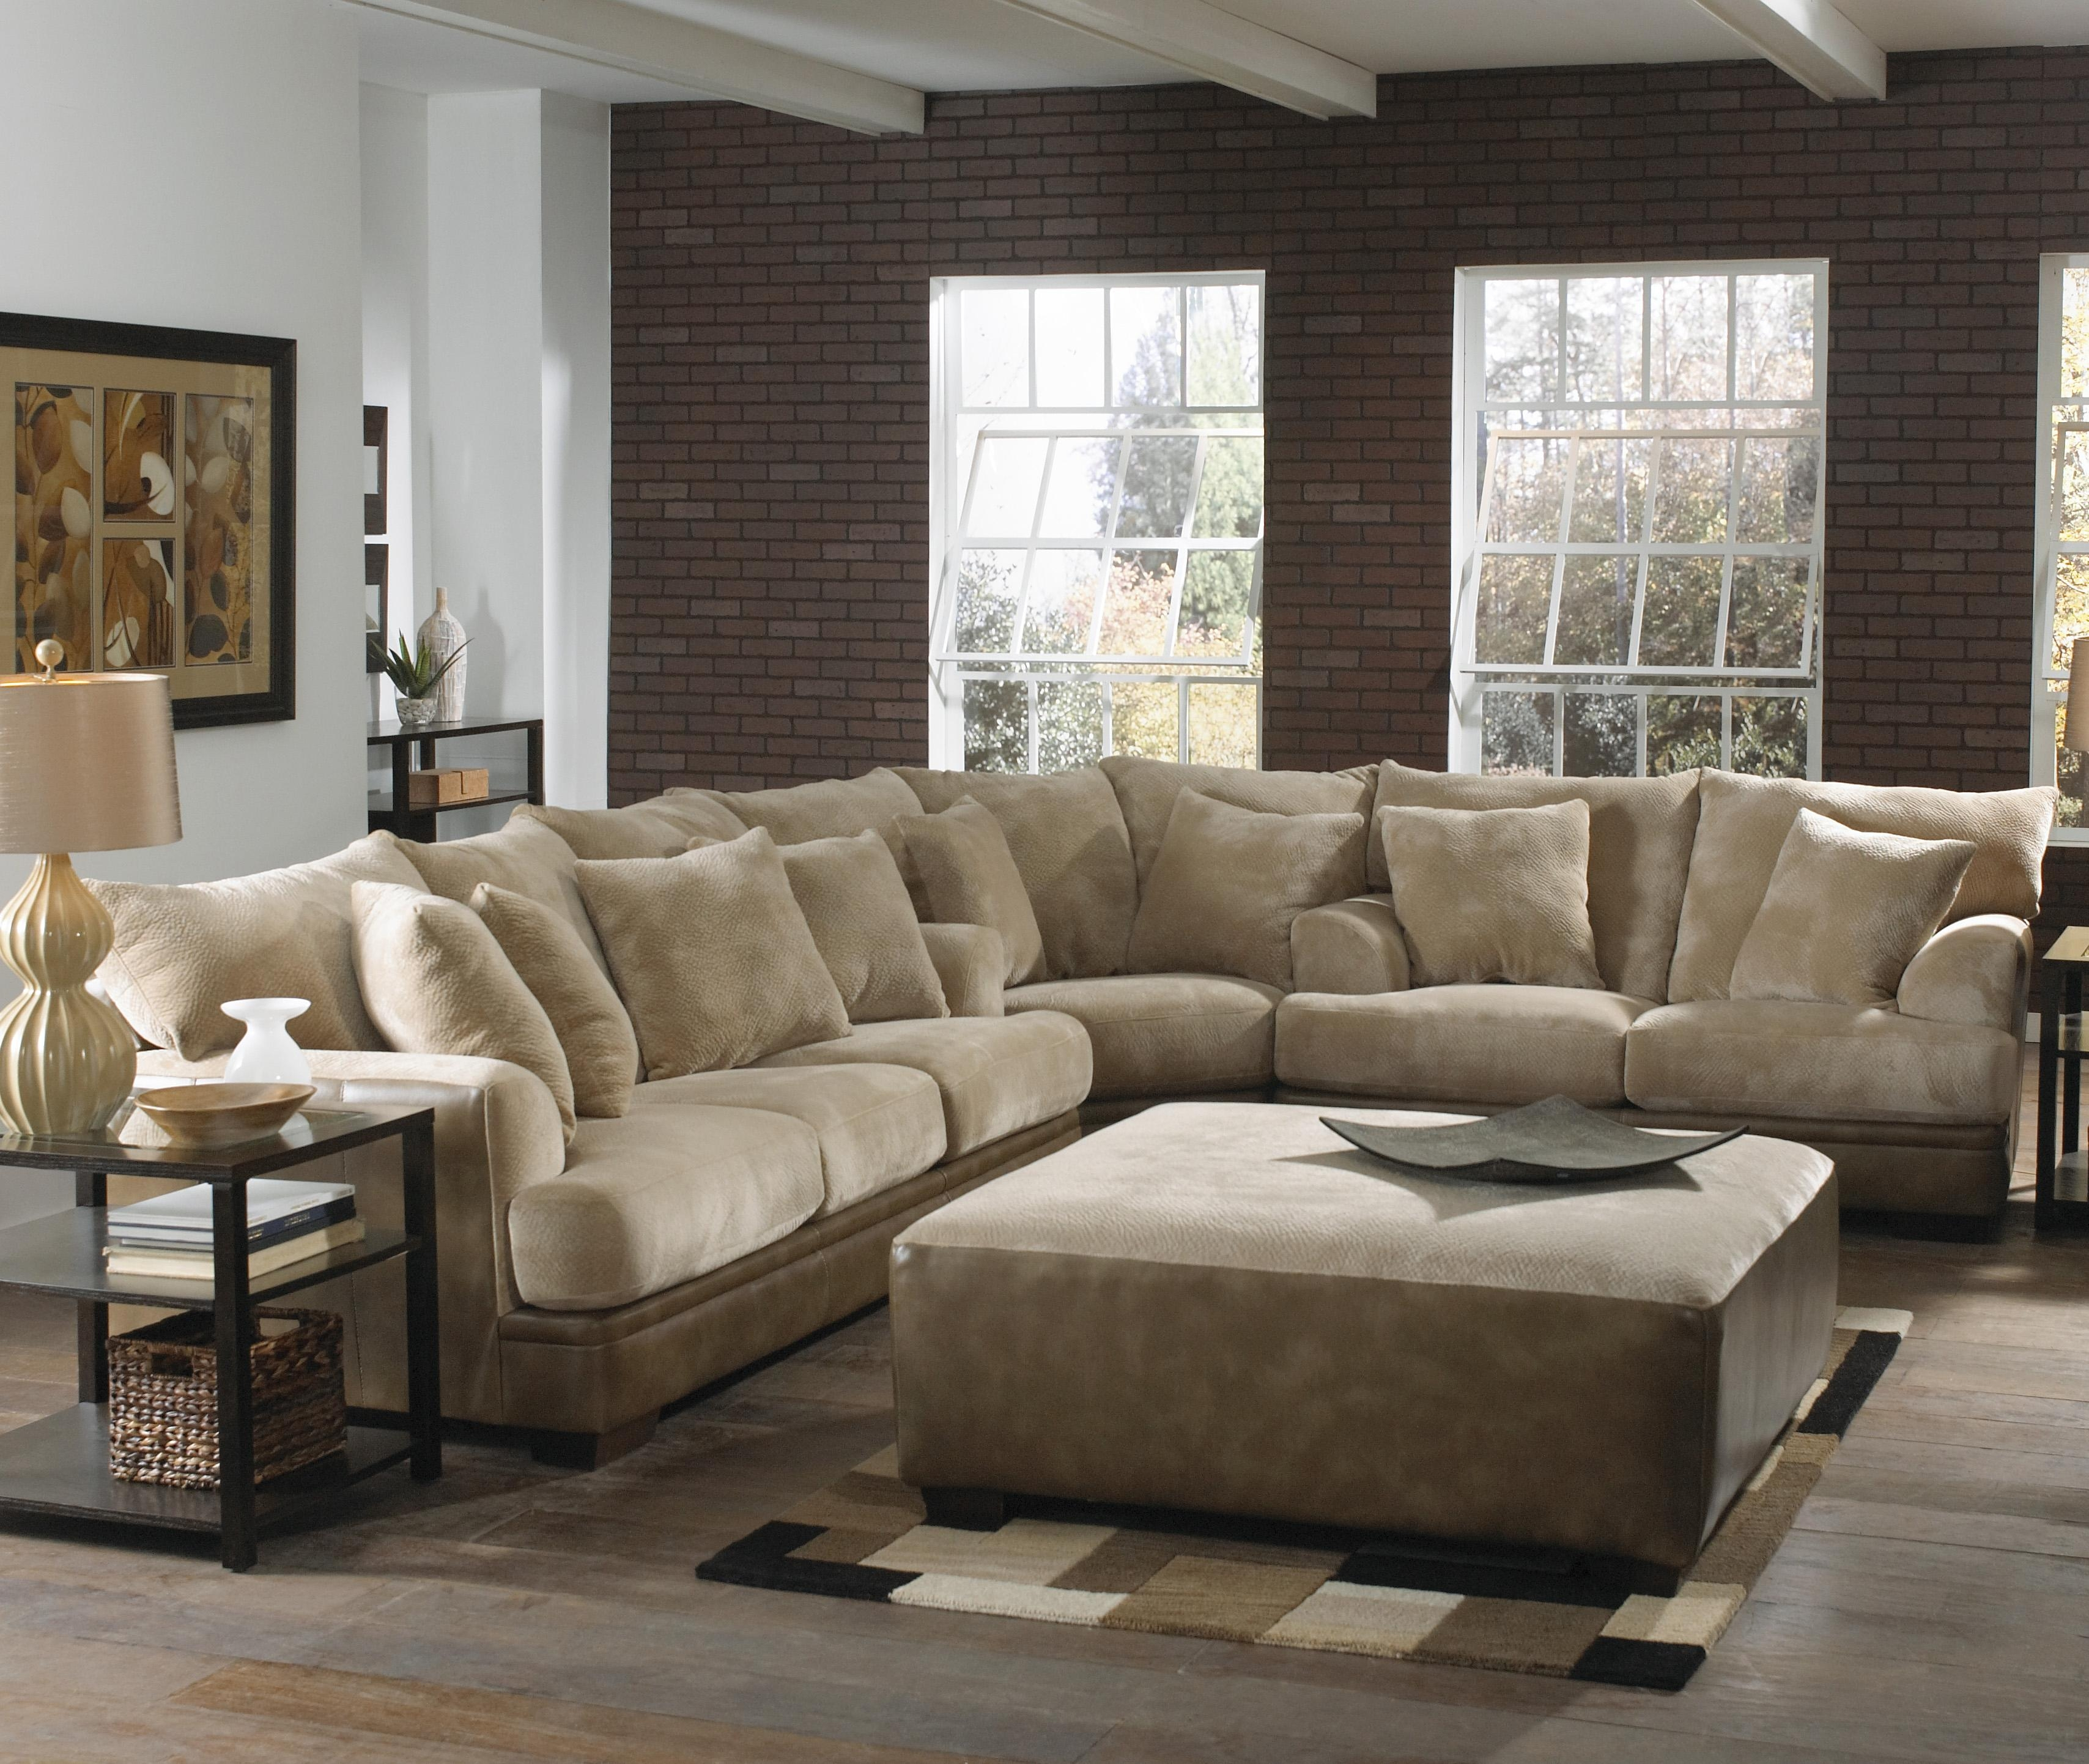 Barkley Large L Shaped Sectional Sofa With Right Side Loveseat Intended For 7 Seat Sectional Sofa (#4 of 12)